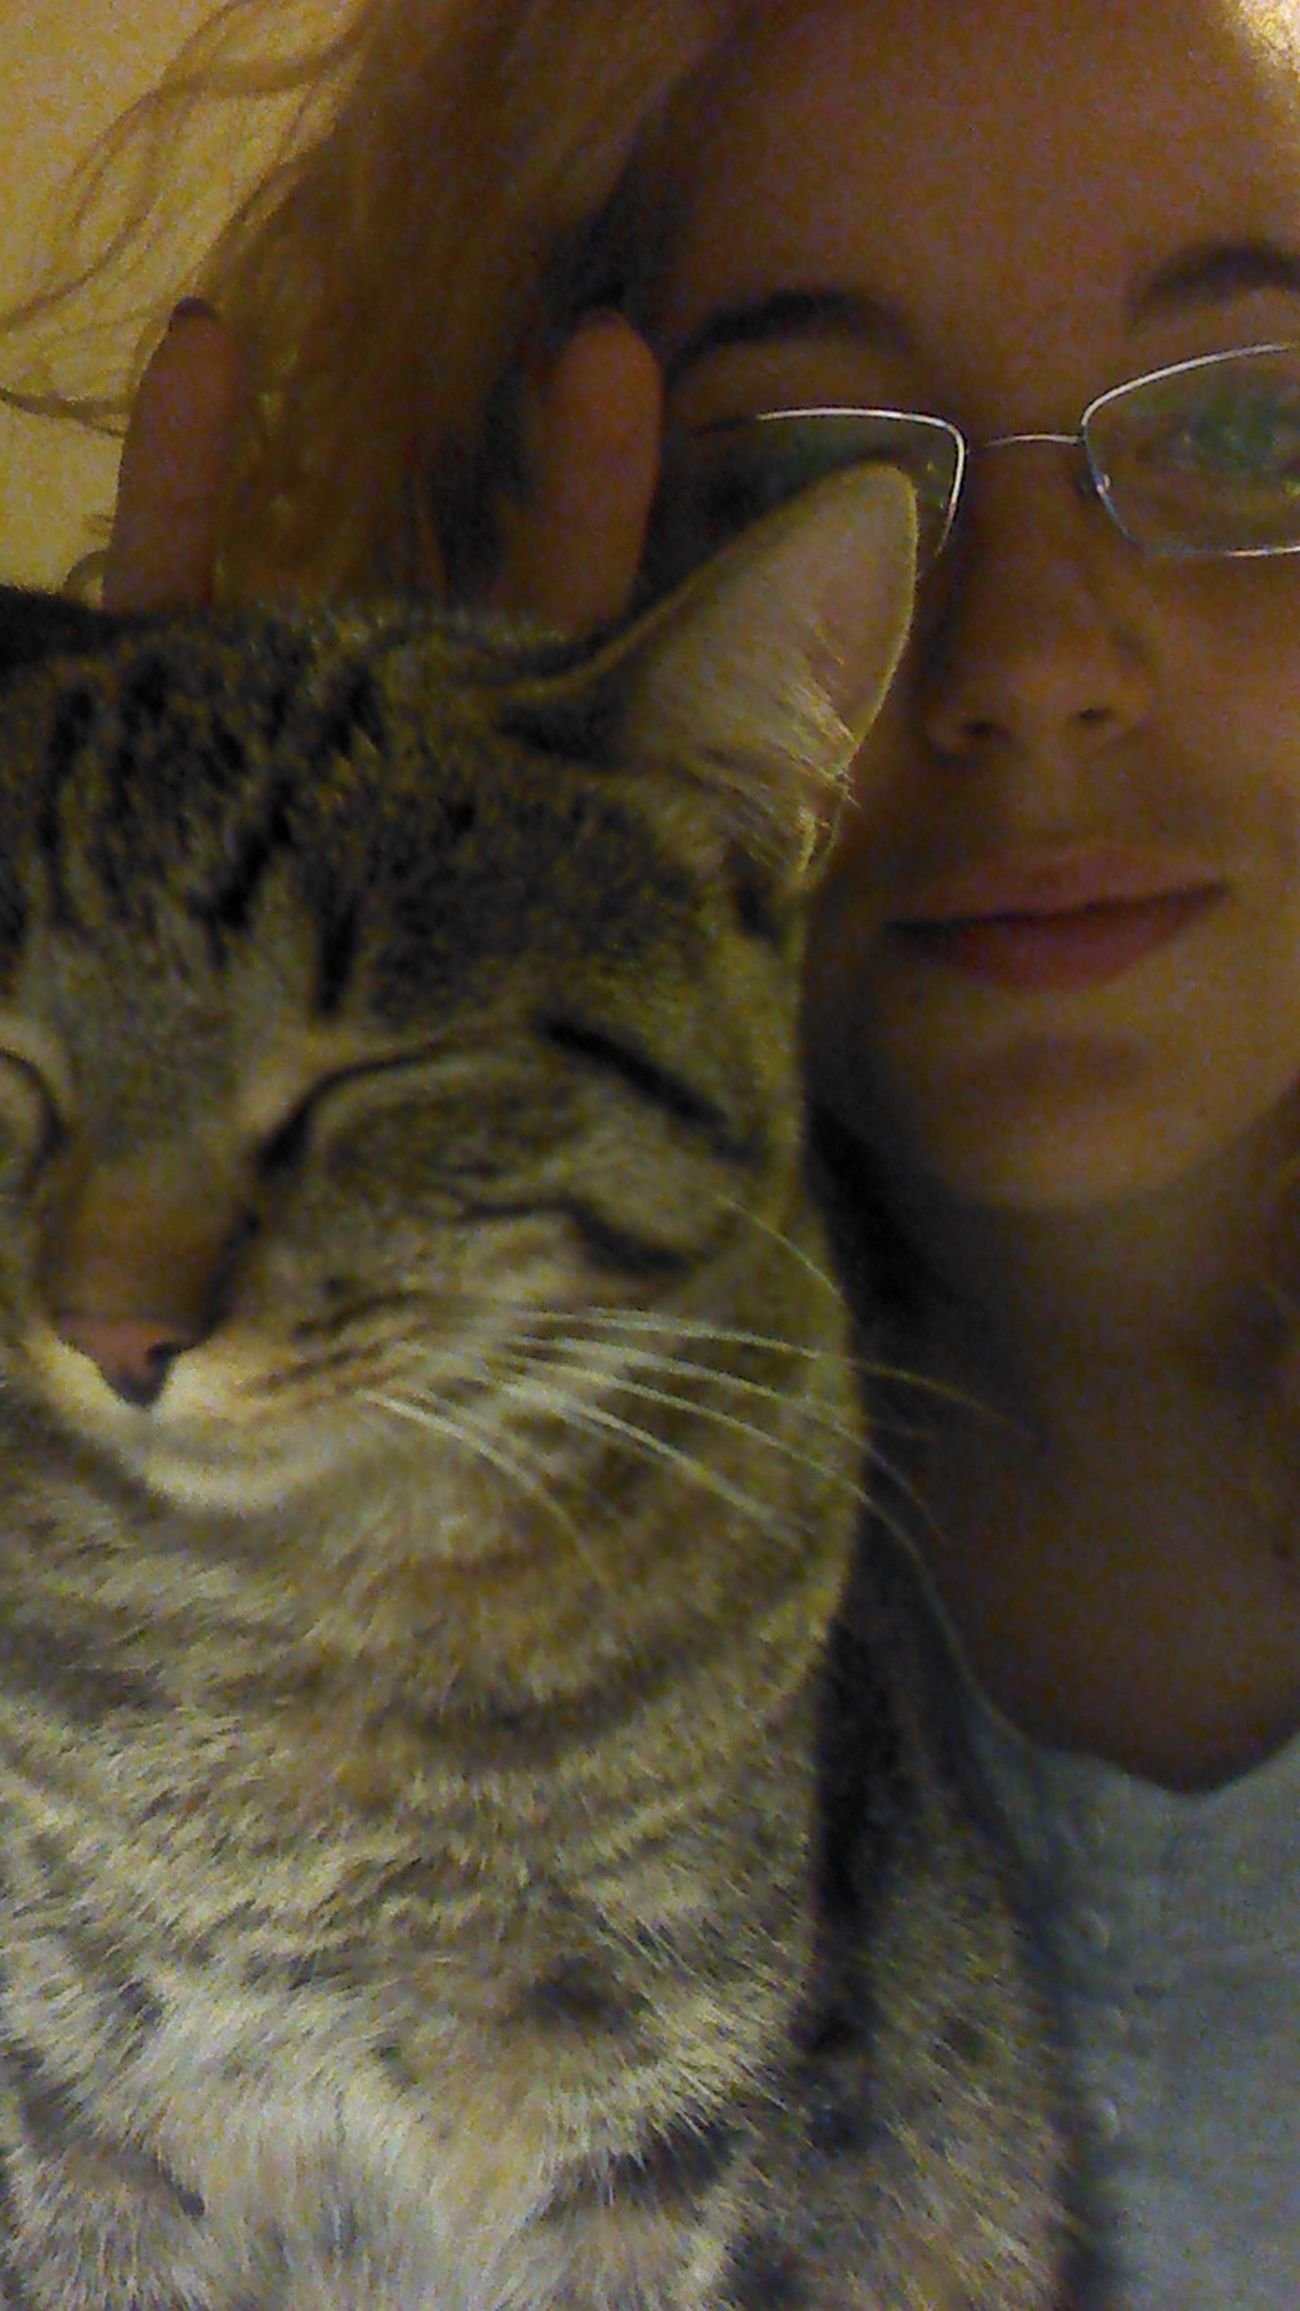 Selfie with a Cat Insteadofstudying